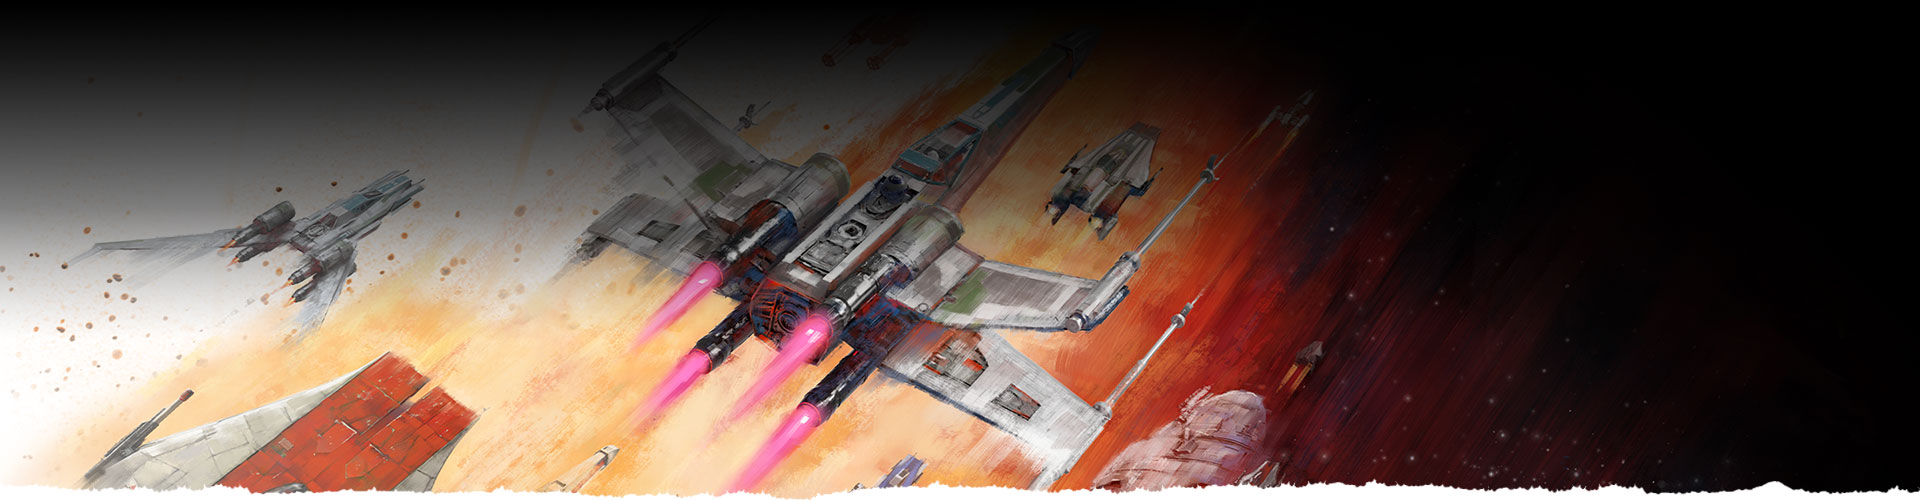 Spaceships from Star Wars: Squadrons